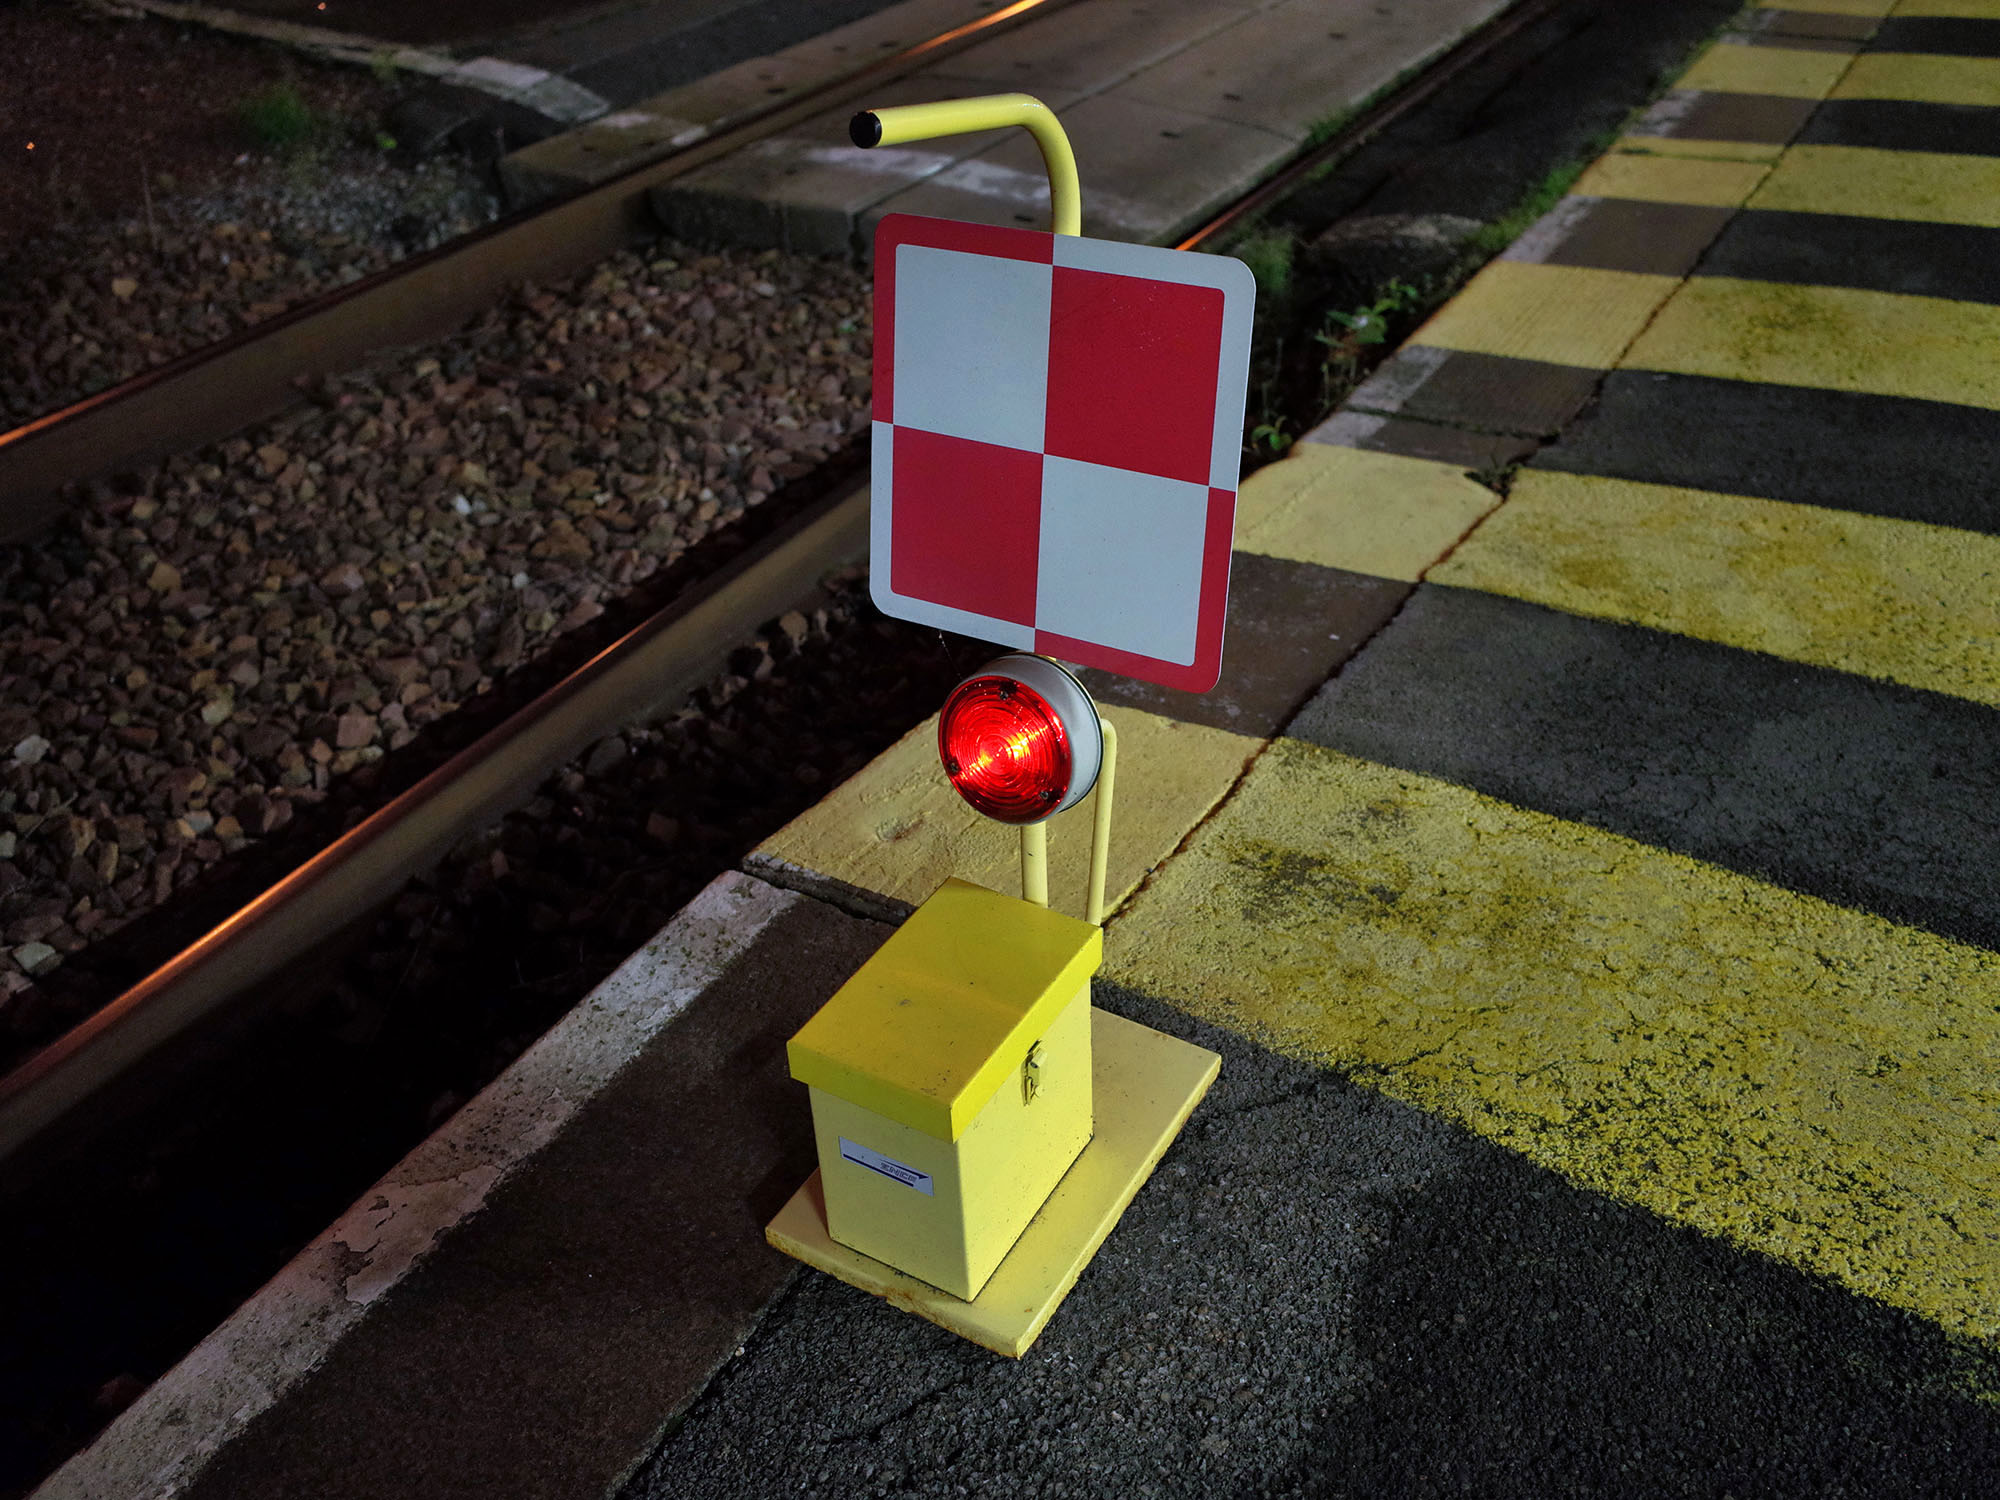 douai gare signal light